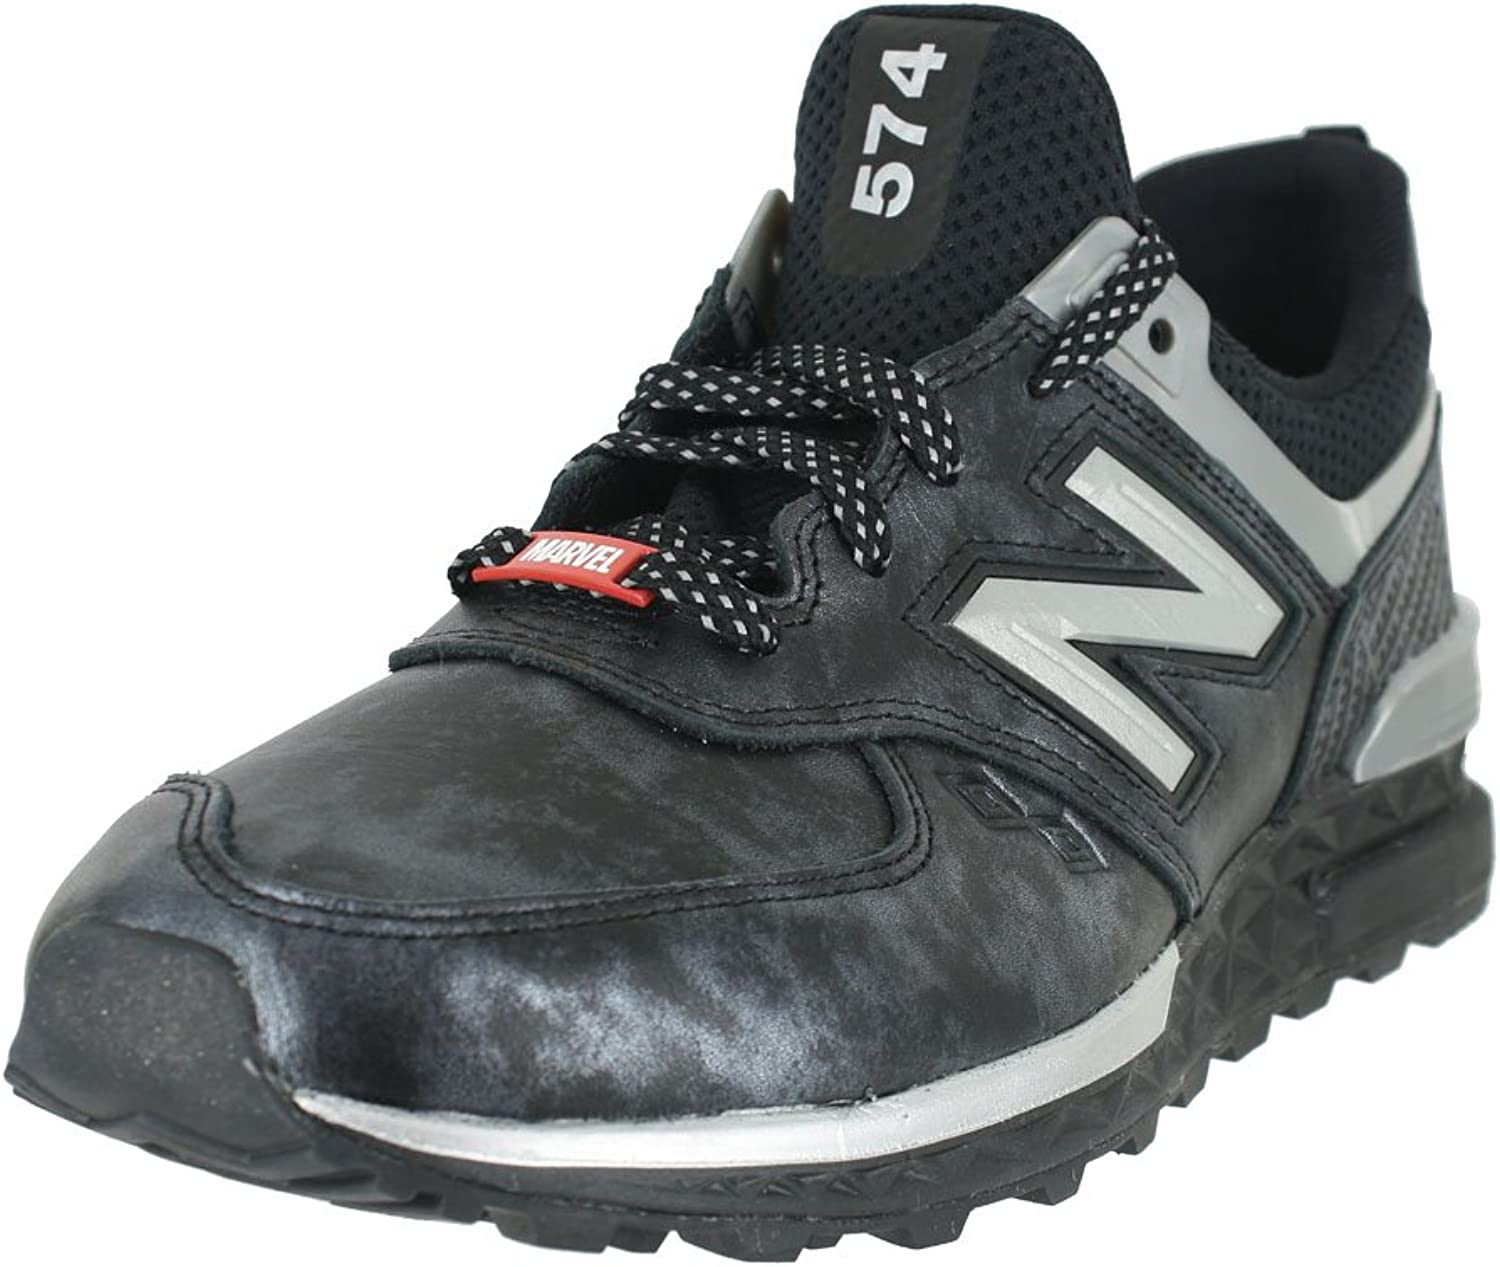 New Balance Black Panther 574 Sport shoes Men's Casual